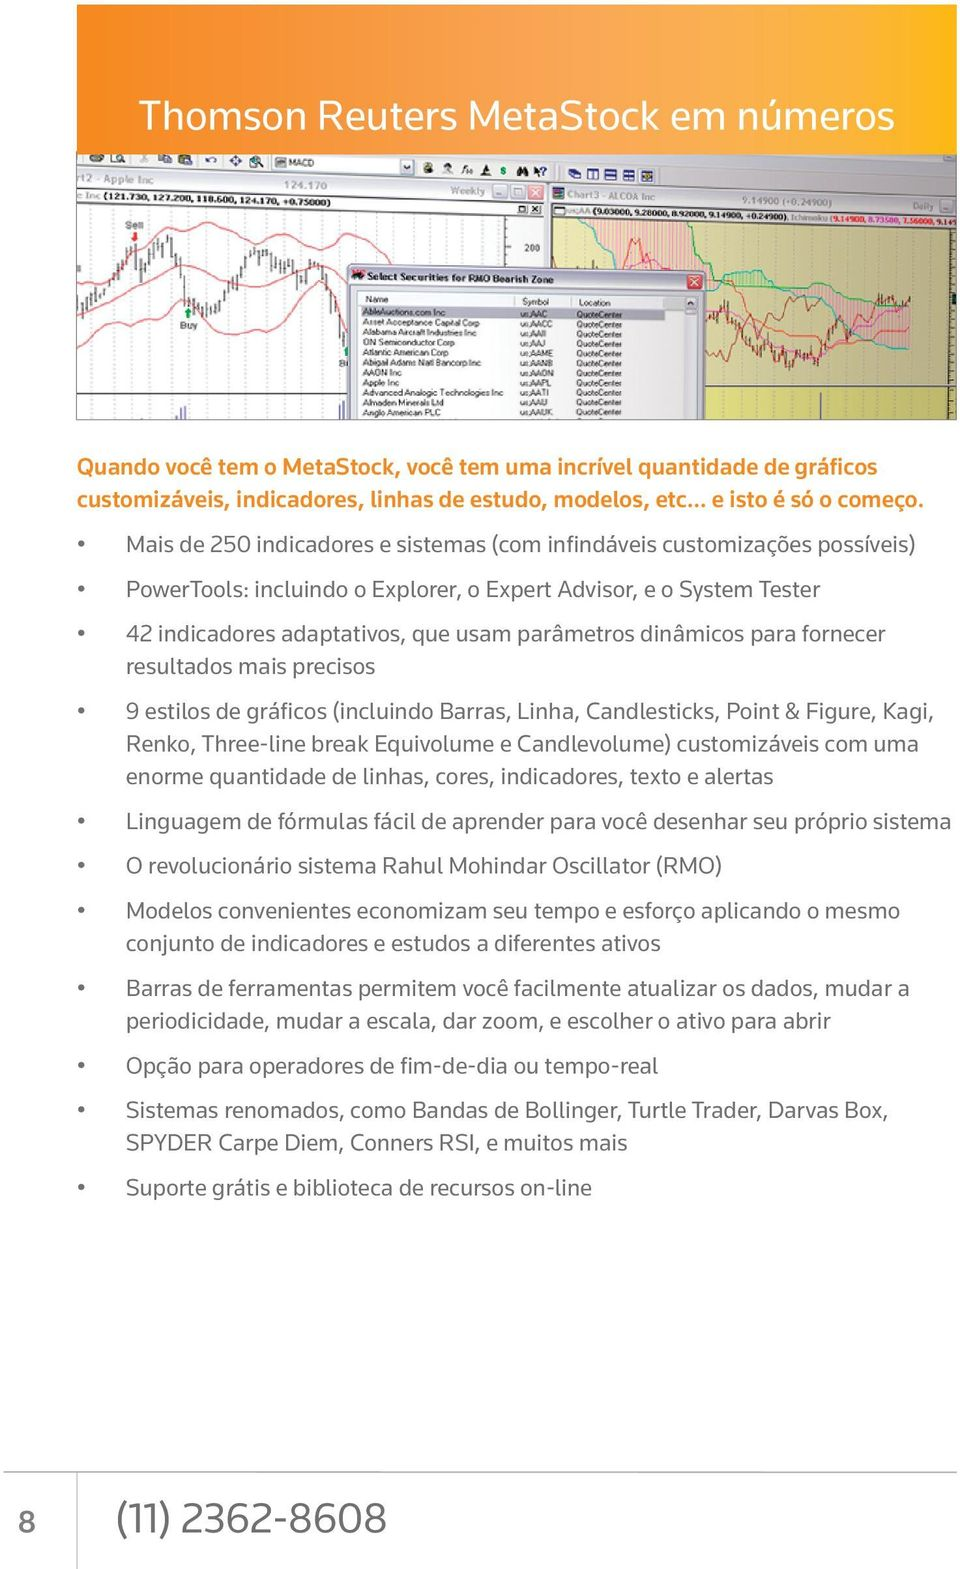 dinâmicos para fornecer resultados mais precisos 9 estilos de gráficos (incluindo Barras, Linha, Candlesticks, Point & Figure, Kagi, Renko, Three-line break Equivolume e Candlevolume) customizáveis